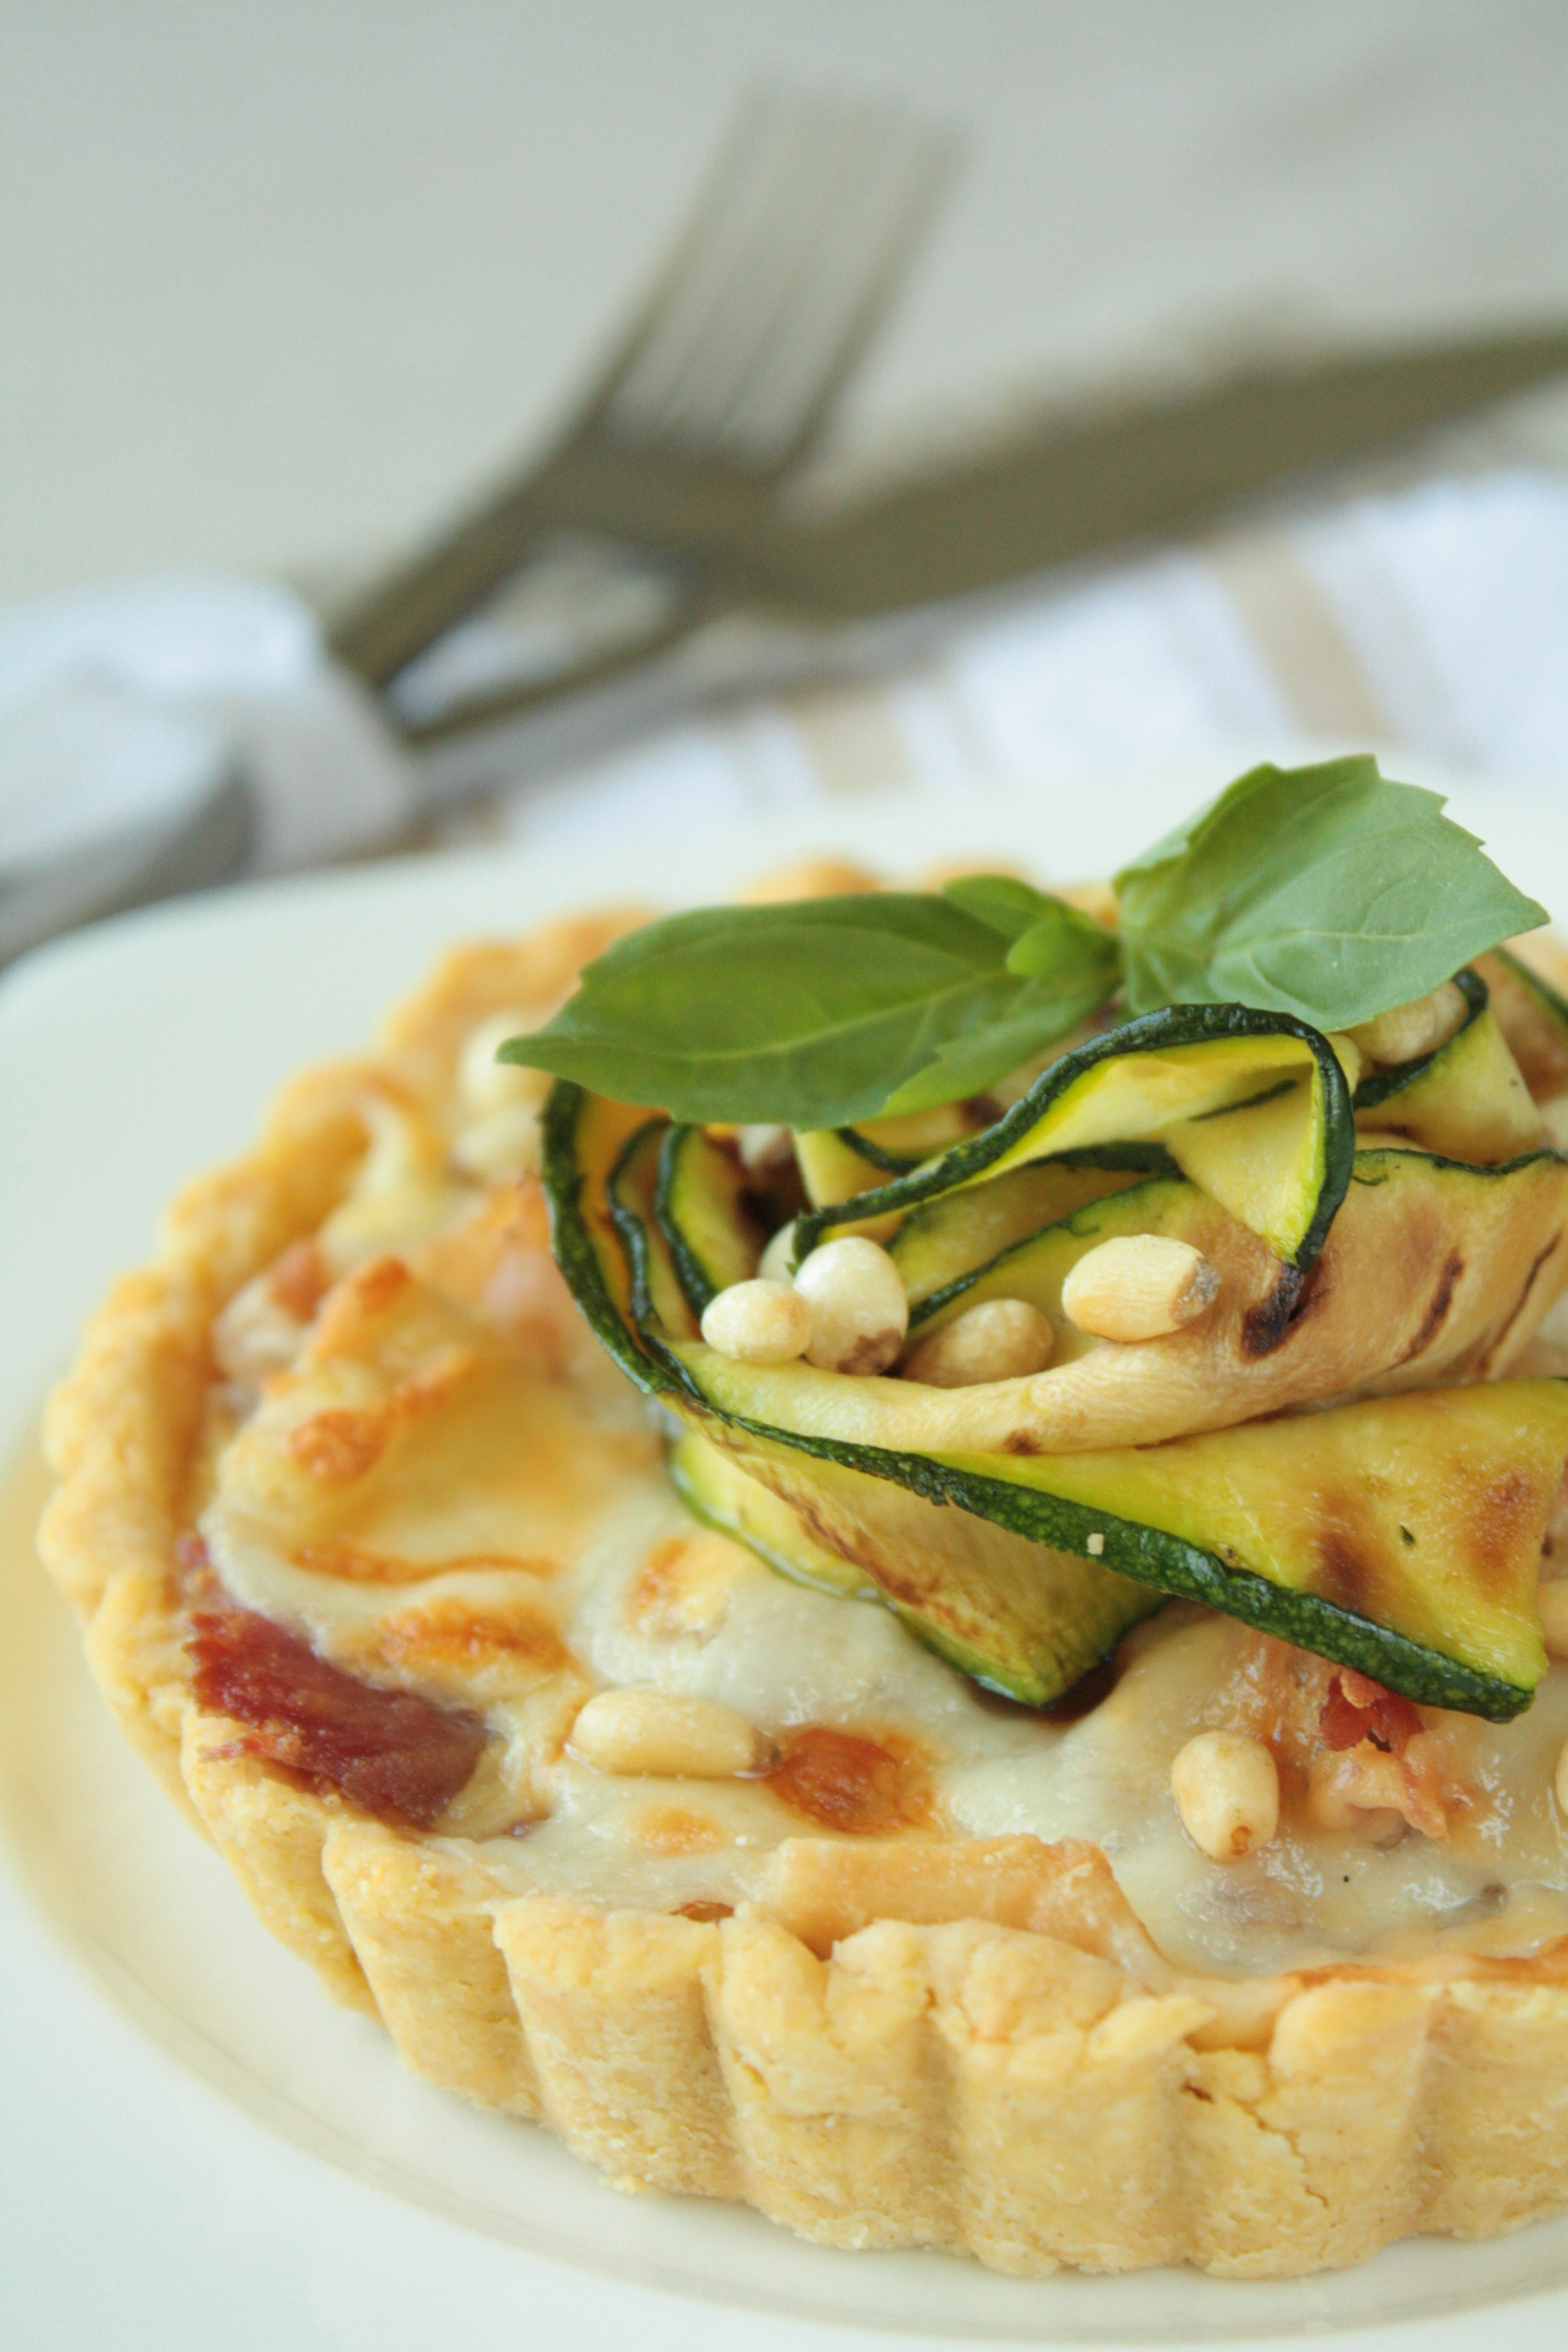 Courgette and Taleggio Tart